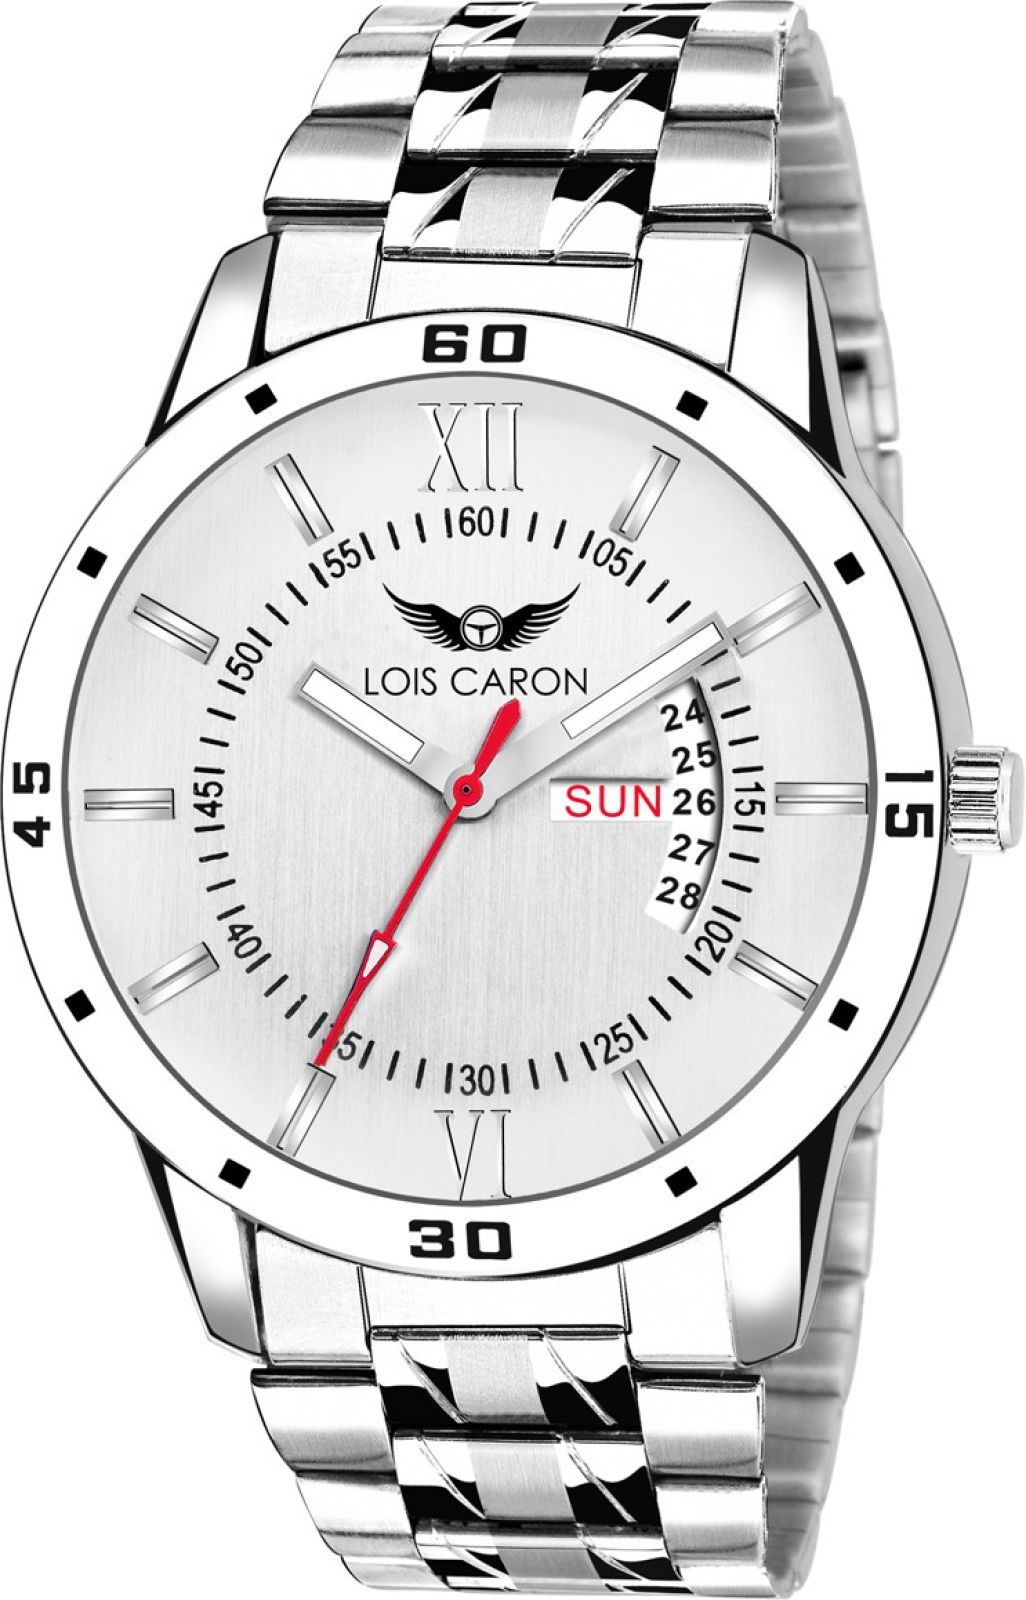 Lois Caron LCS-8011 DAY AND DATE FUNCTIONING Watch - For Men